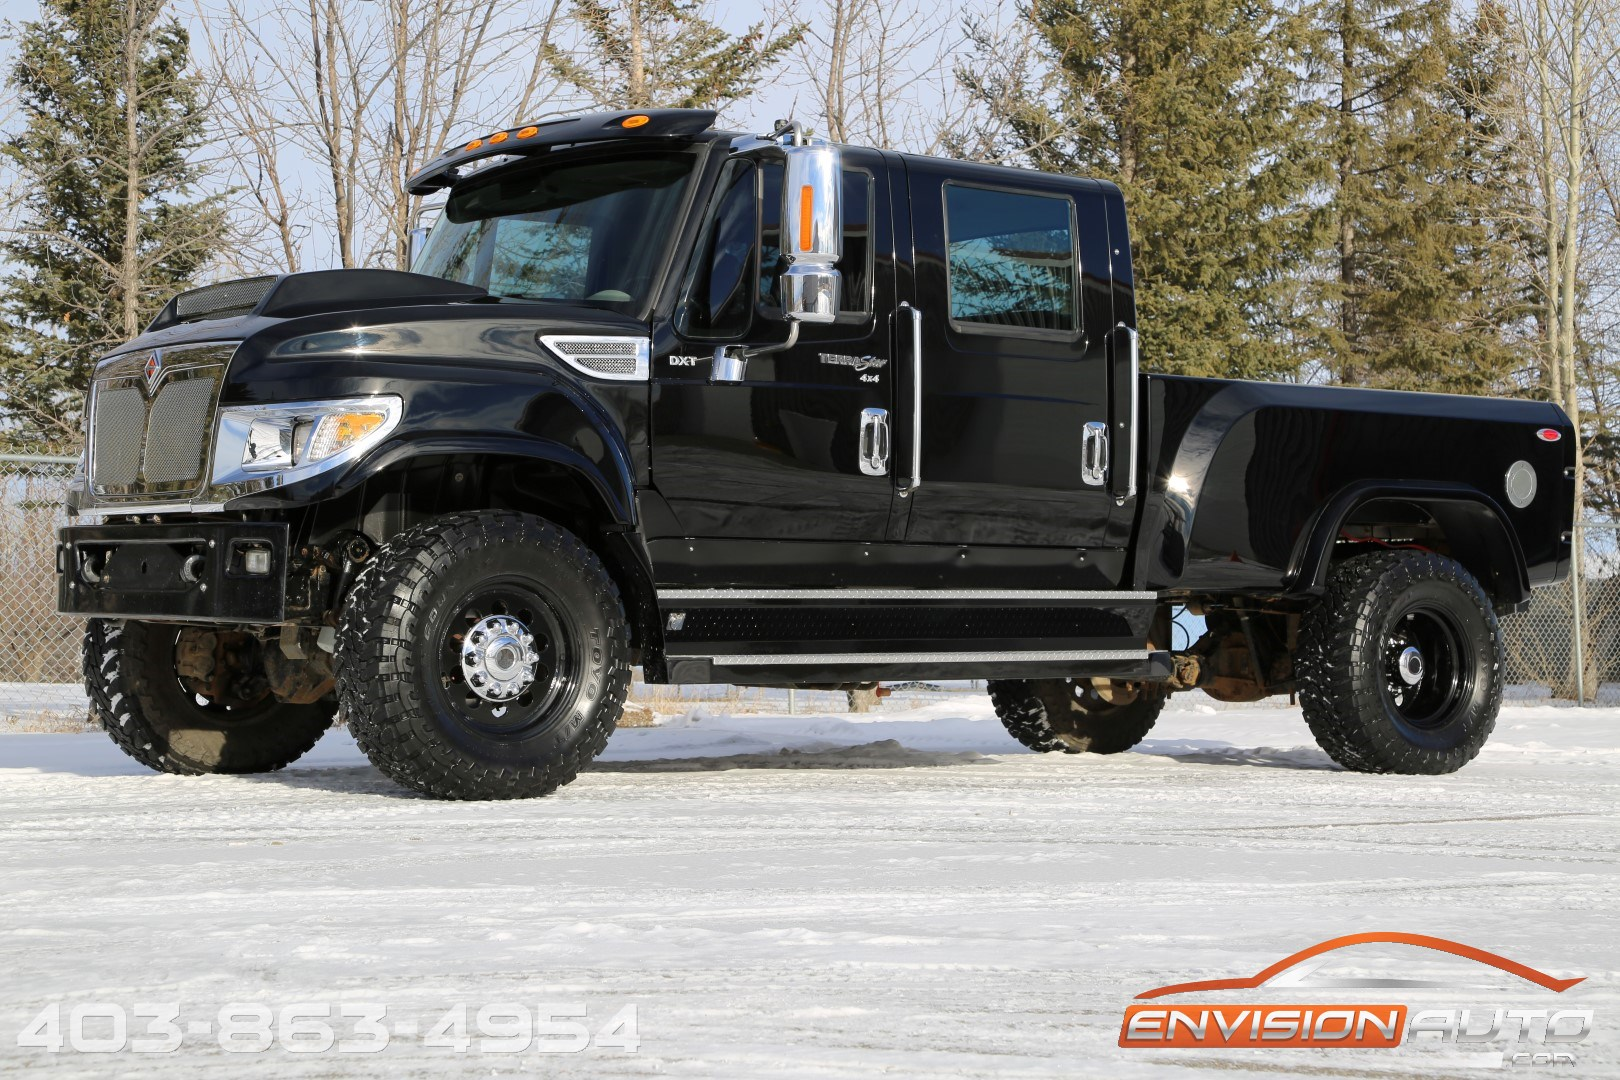 2008 Corvette For Sale >> 2014 International Terrastar 4×4 DXT – – Custom Showtruck! - Envision Auto